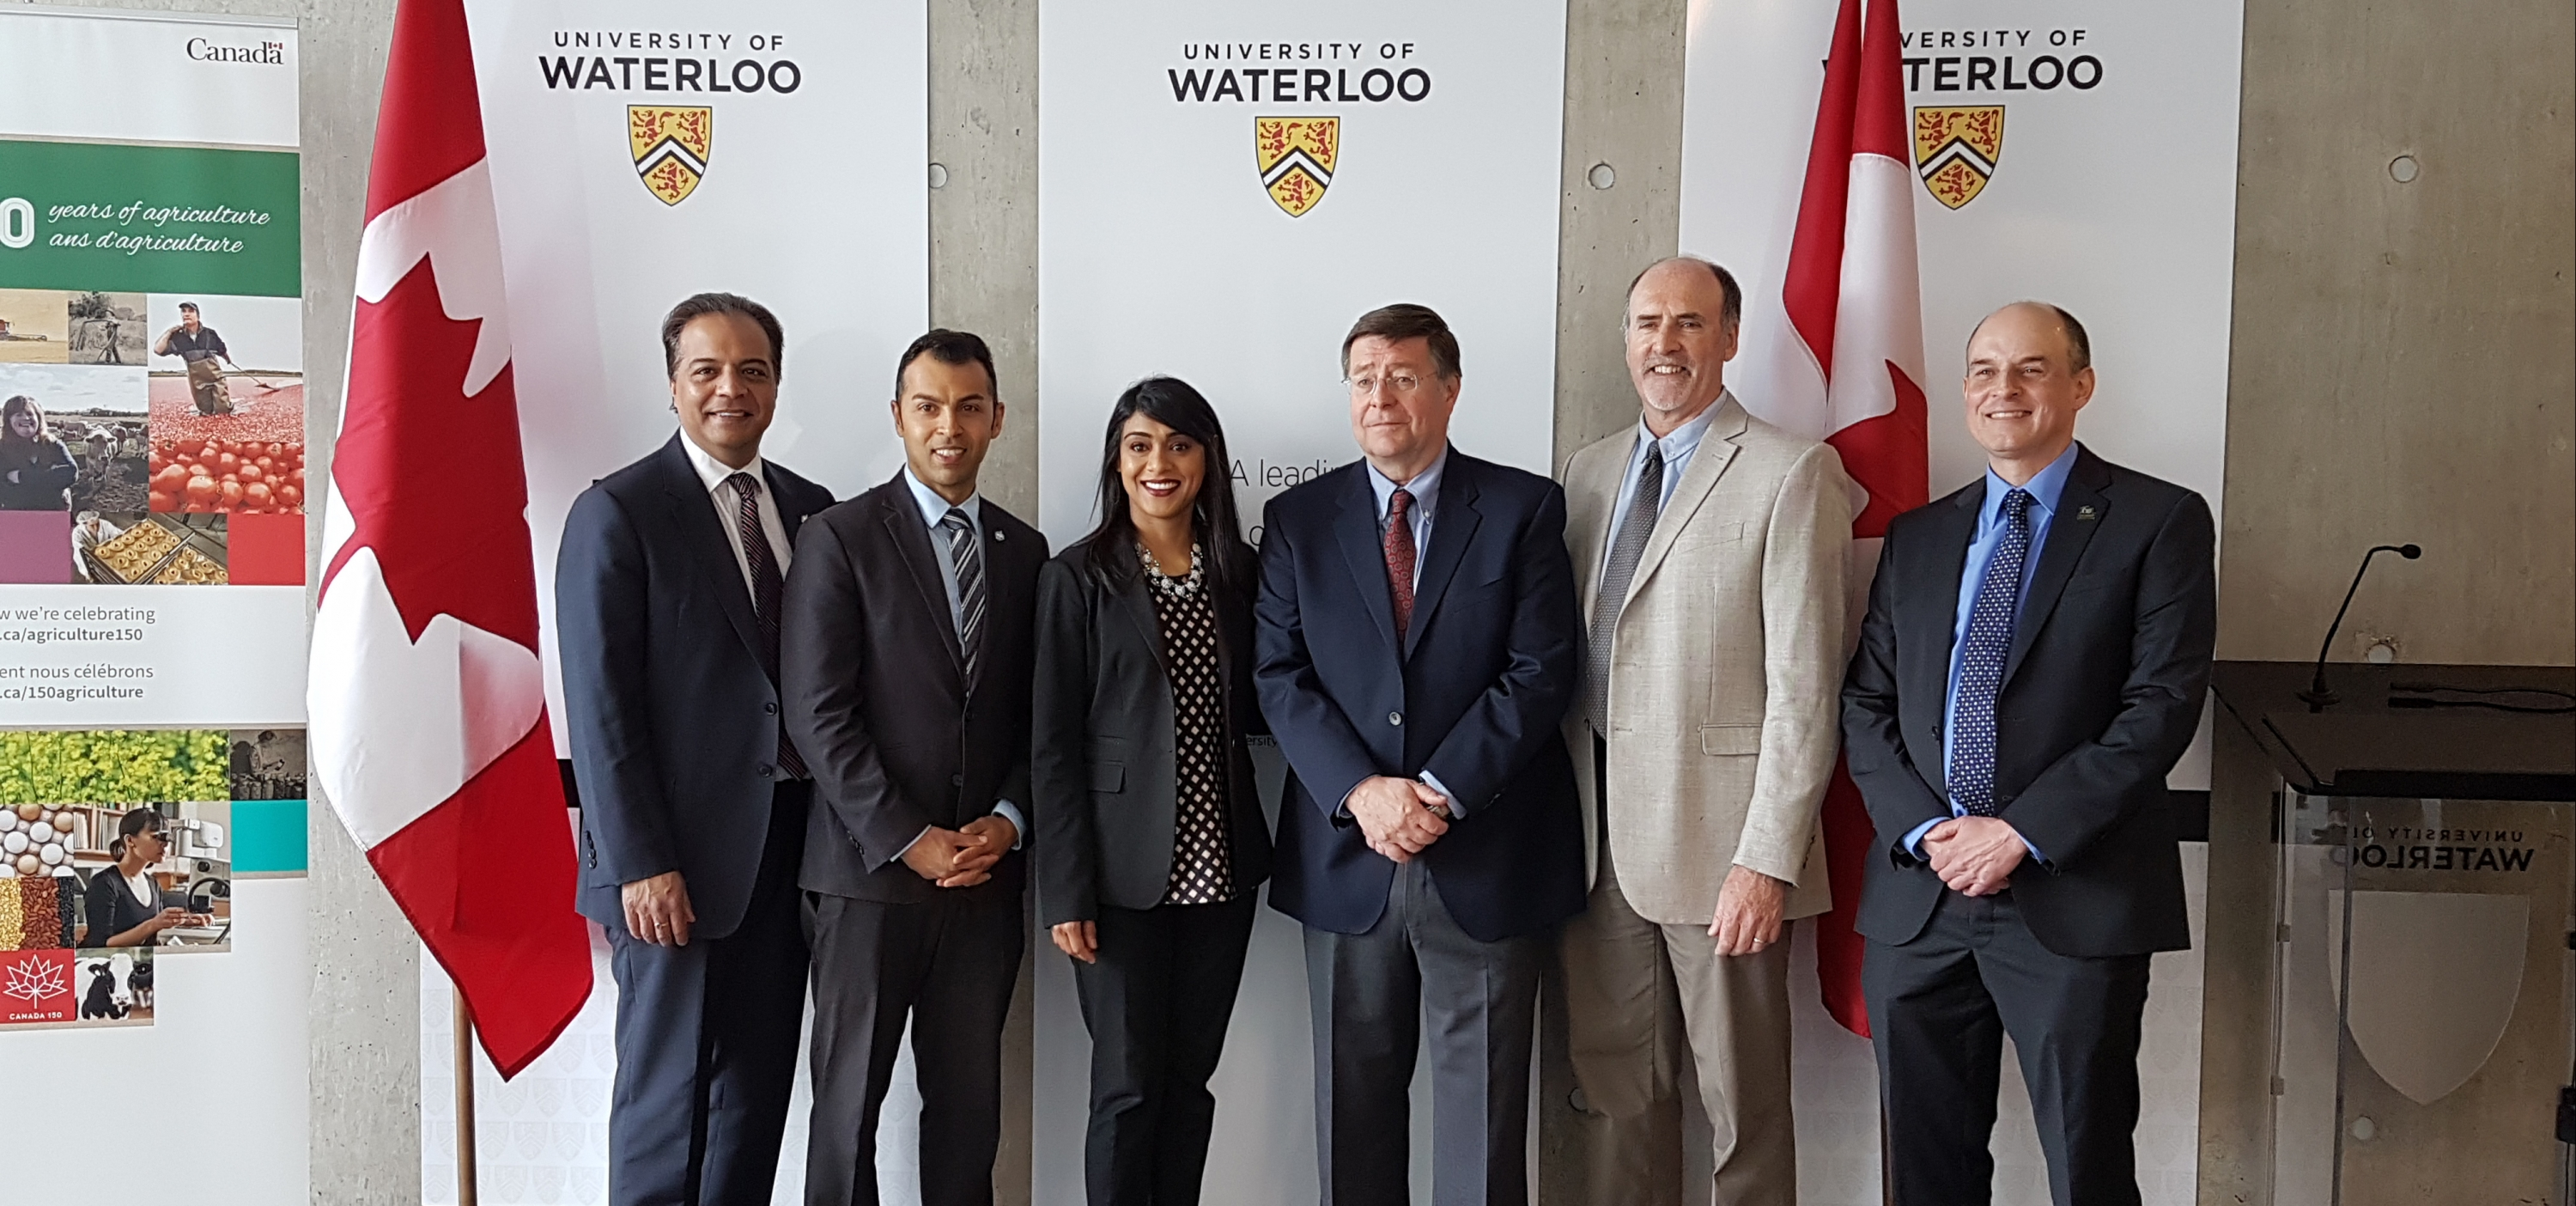 Bardish Chagger announces $1.9M funding for sustainable agriculture.